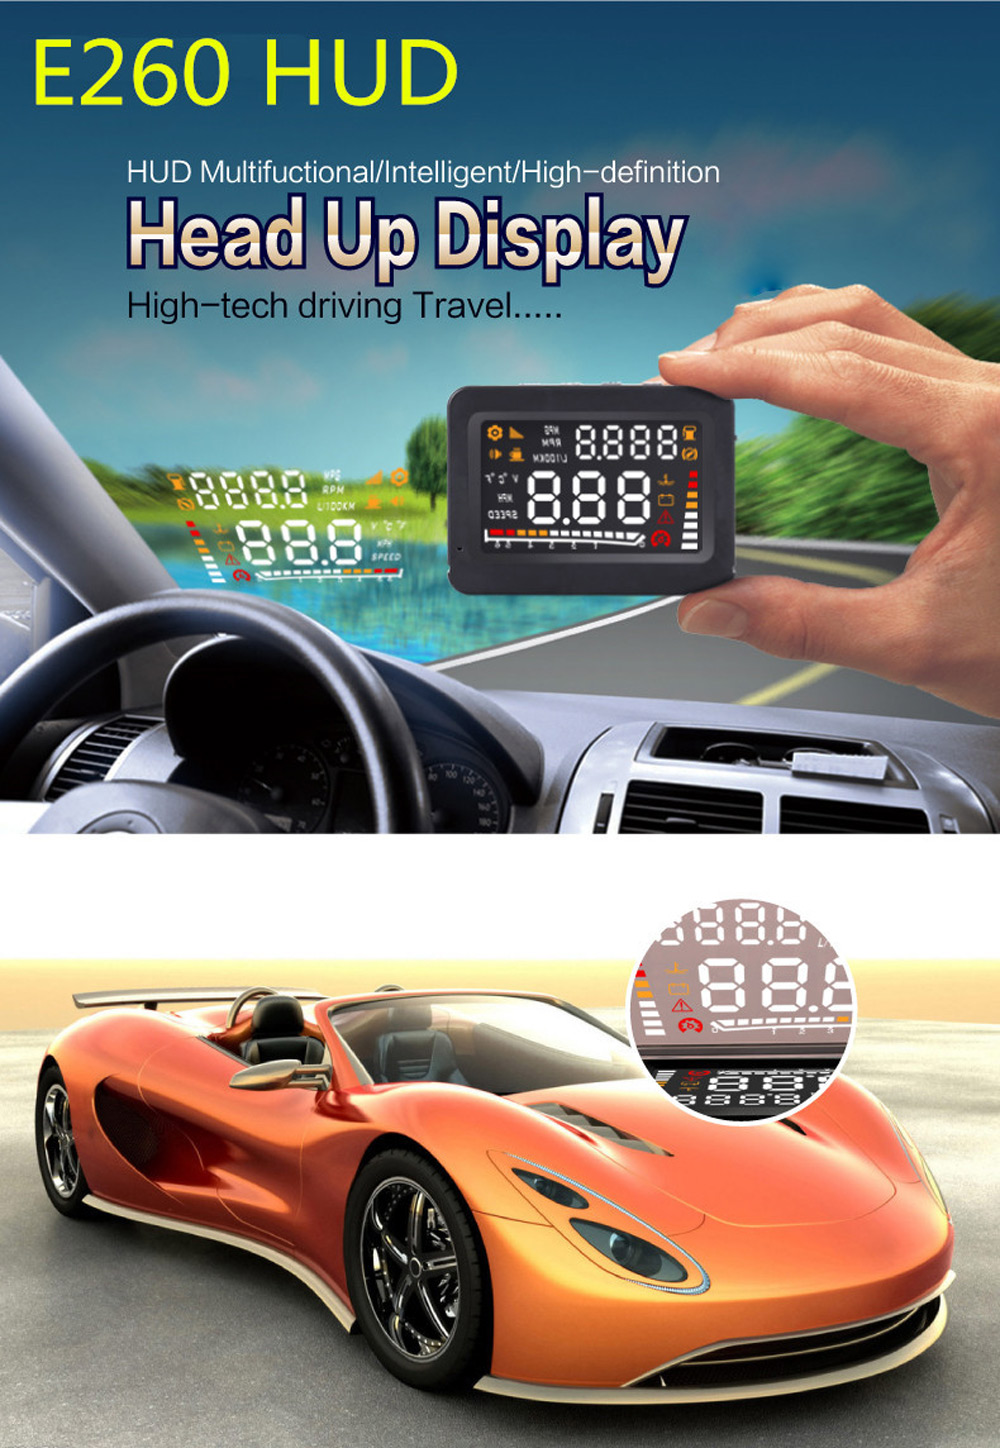 E260 4 Inch Car HUD Head Up Display OBD II Interface with 2D Vision Reflection